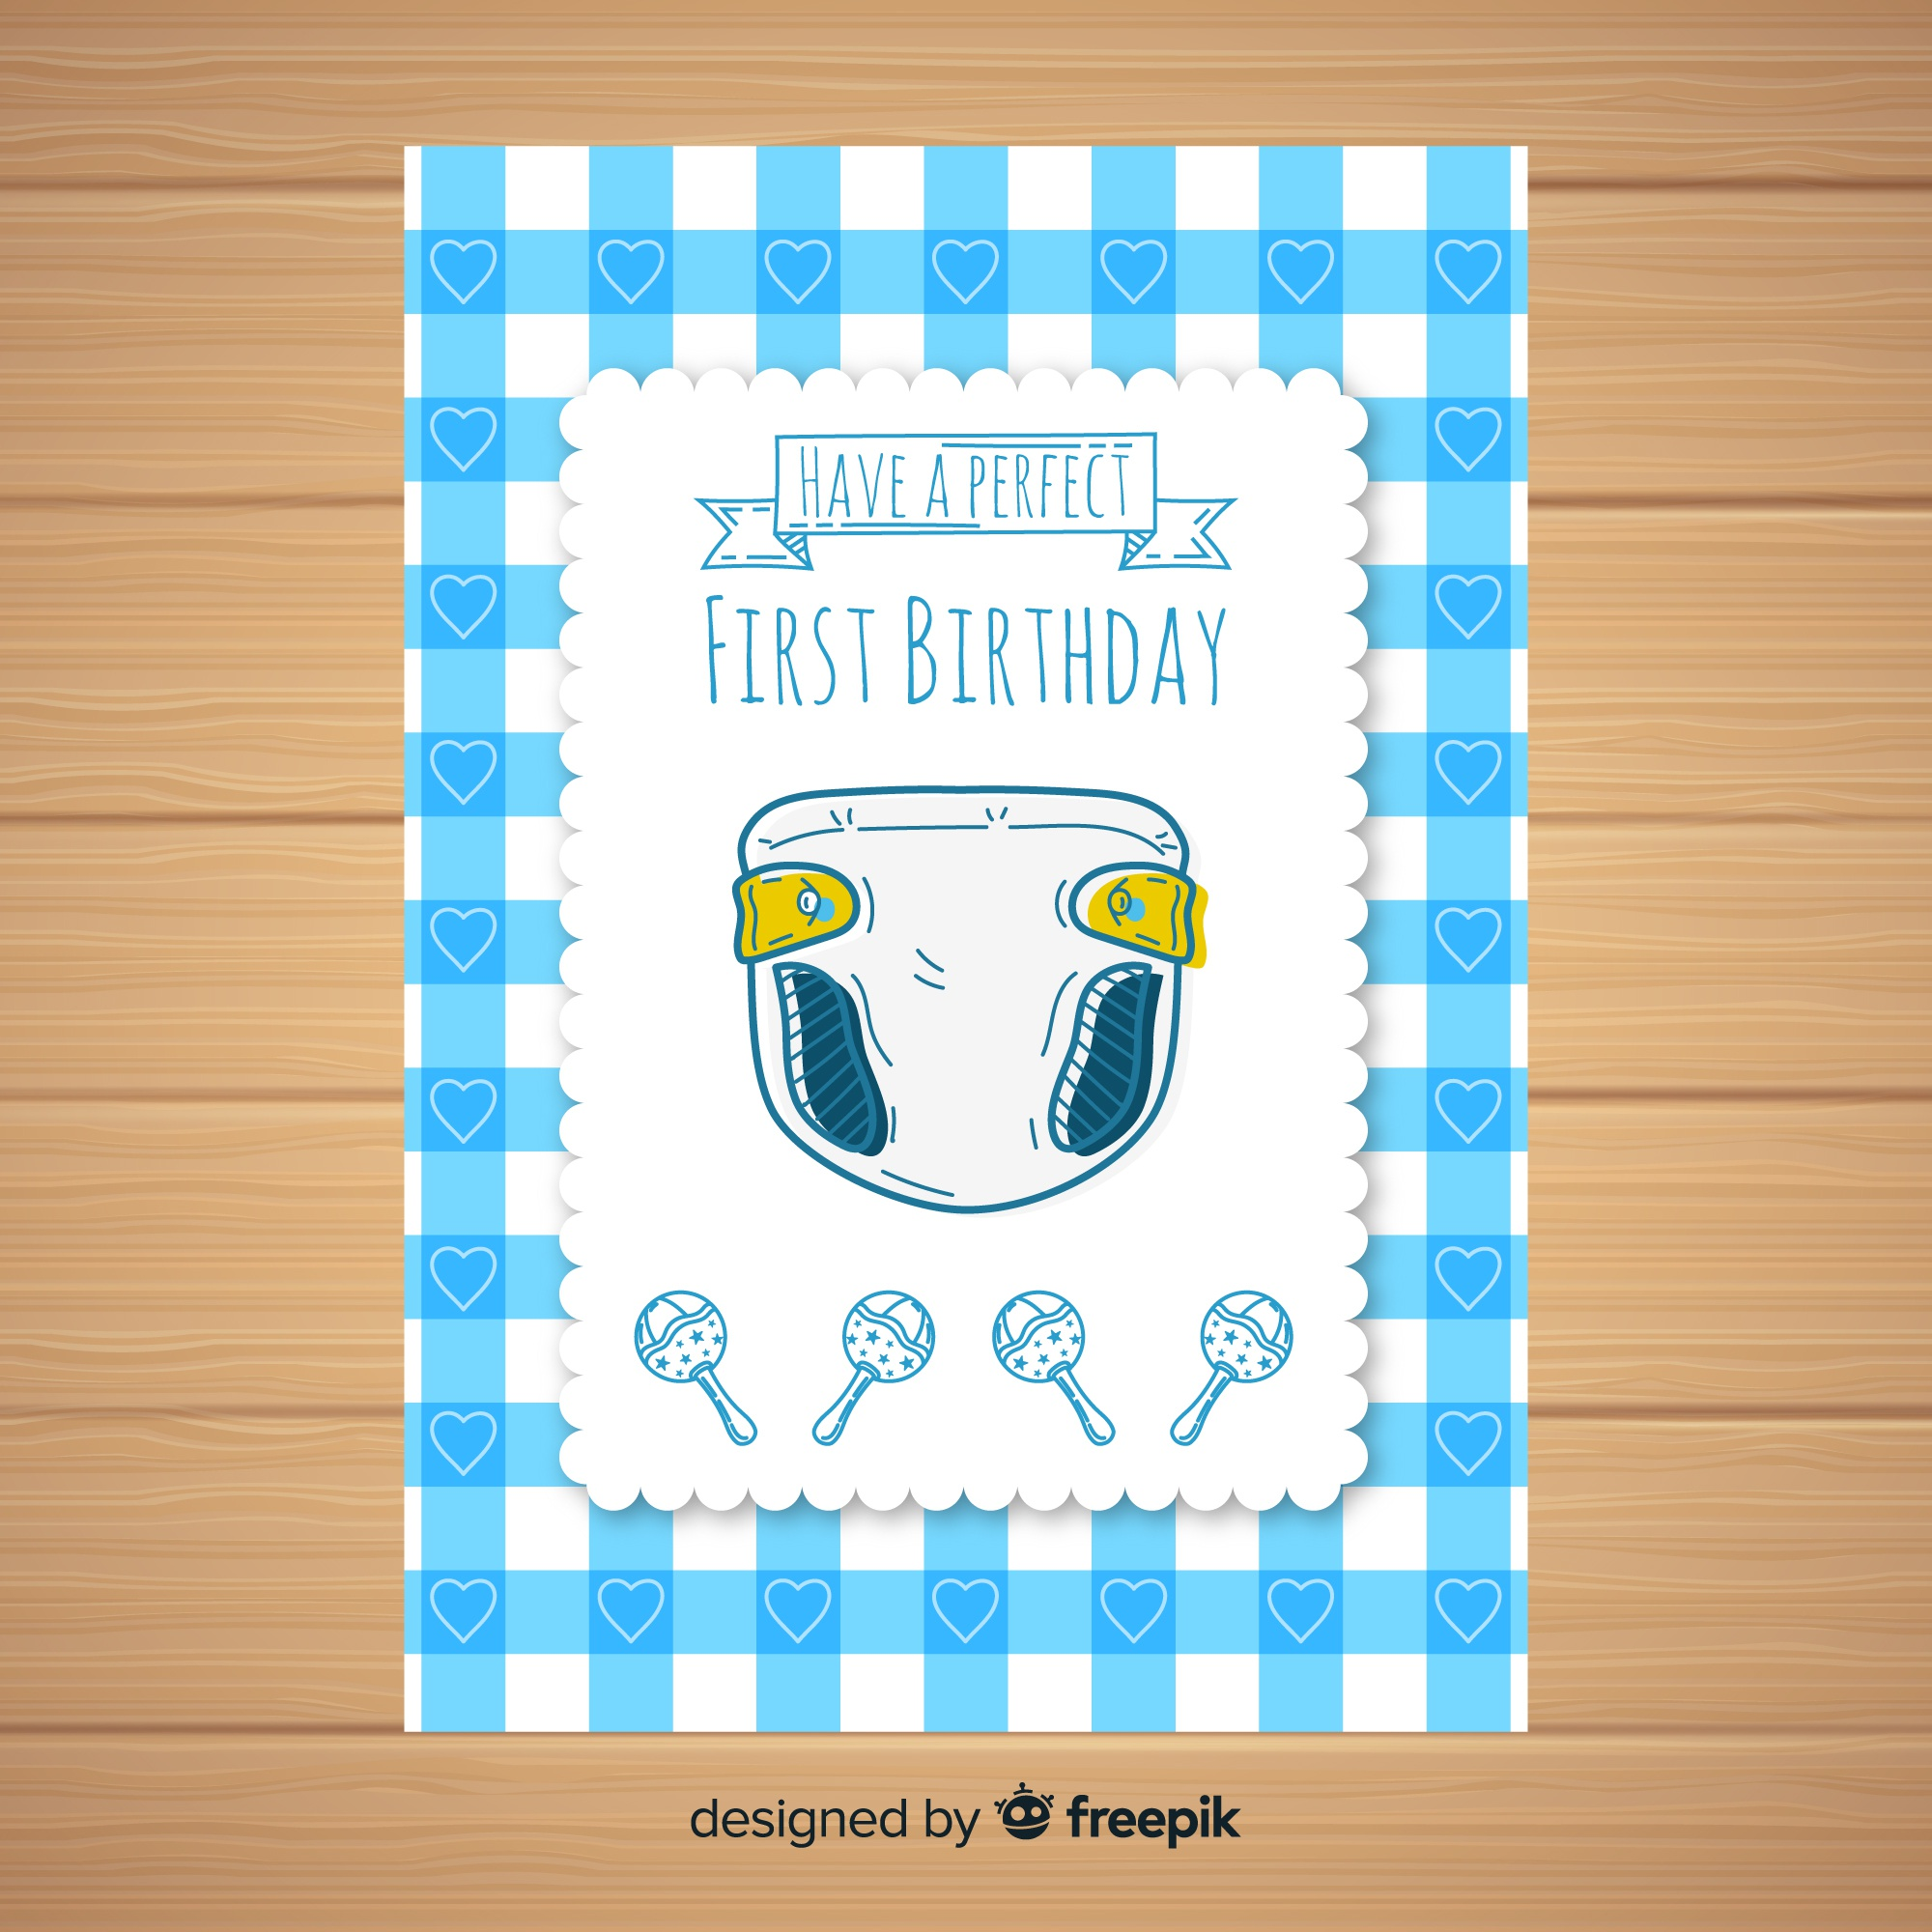 First birthday hand drawn diaper card template